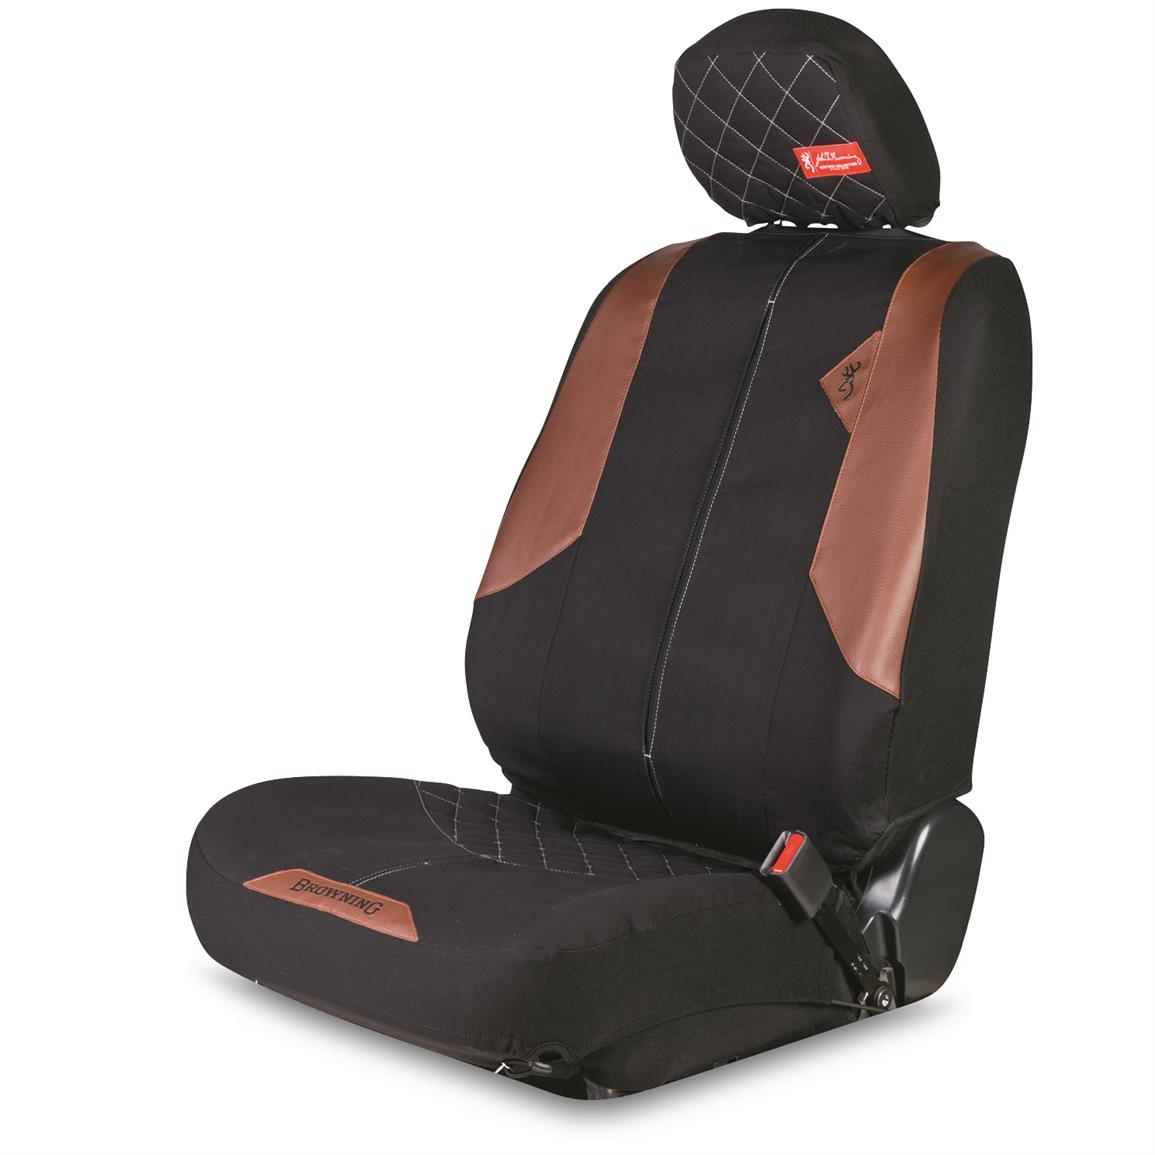 Browning Heritage Seat Cover, Black